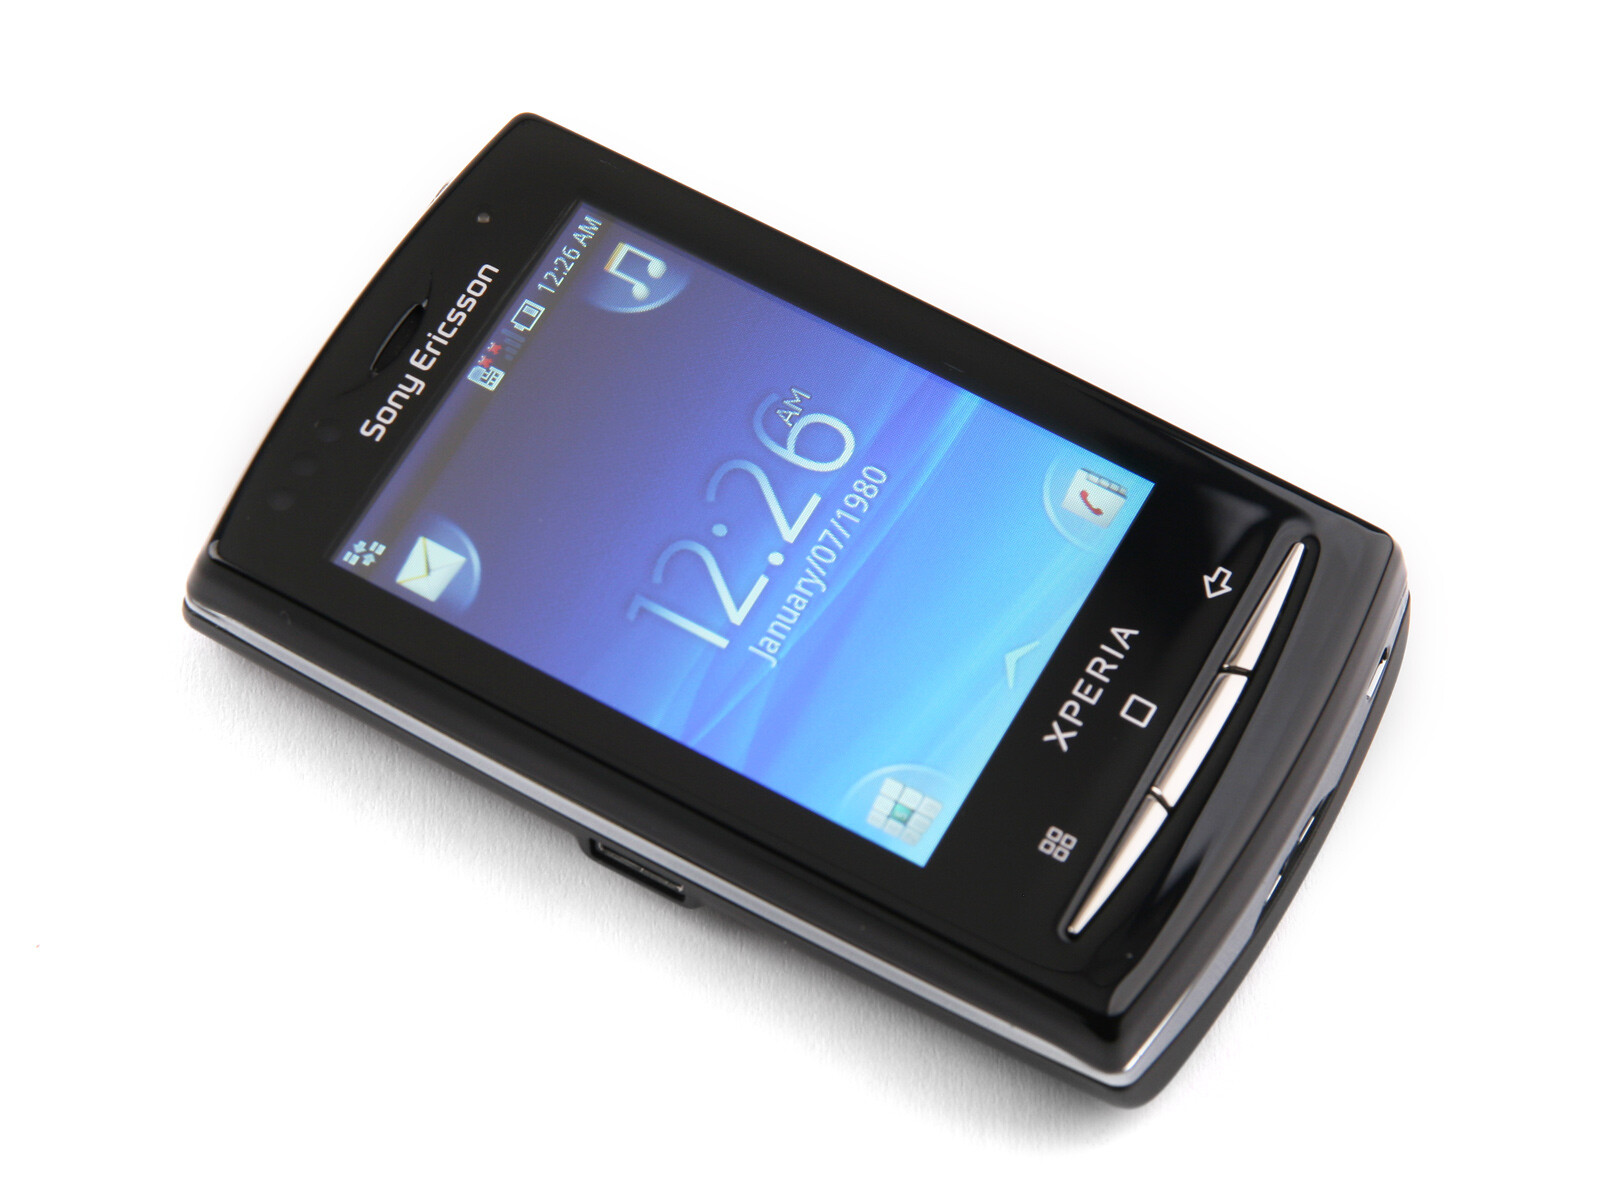 190 Array - sony ericsson xperia x10 mini pro a photos rh phonearena ...